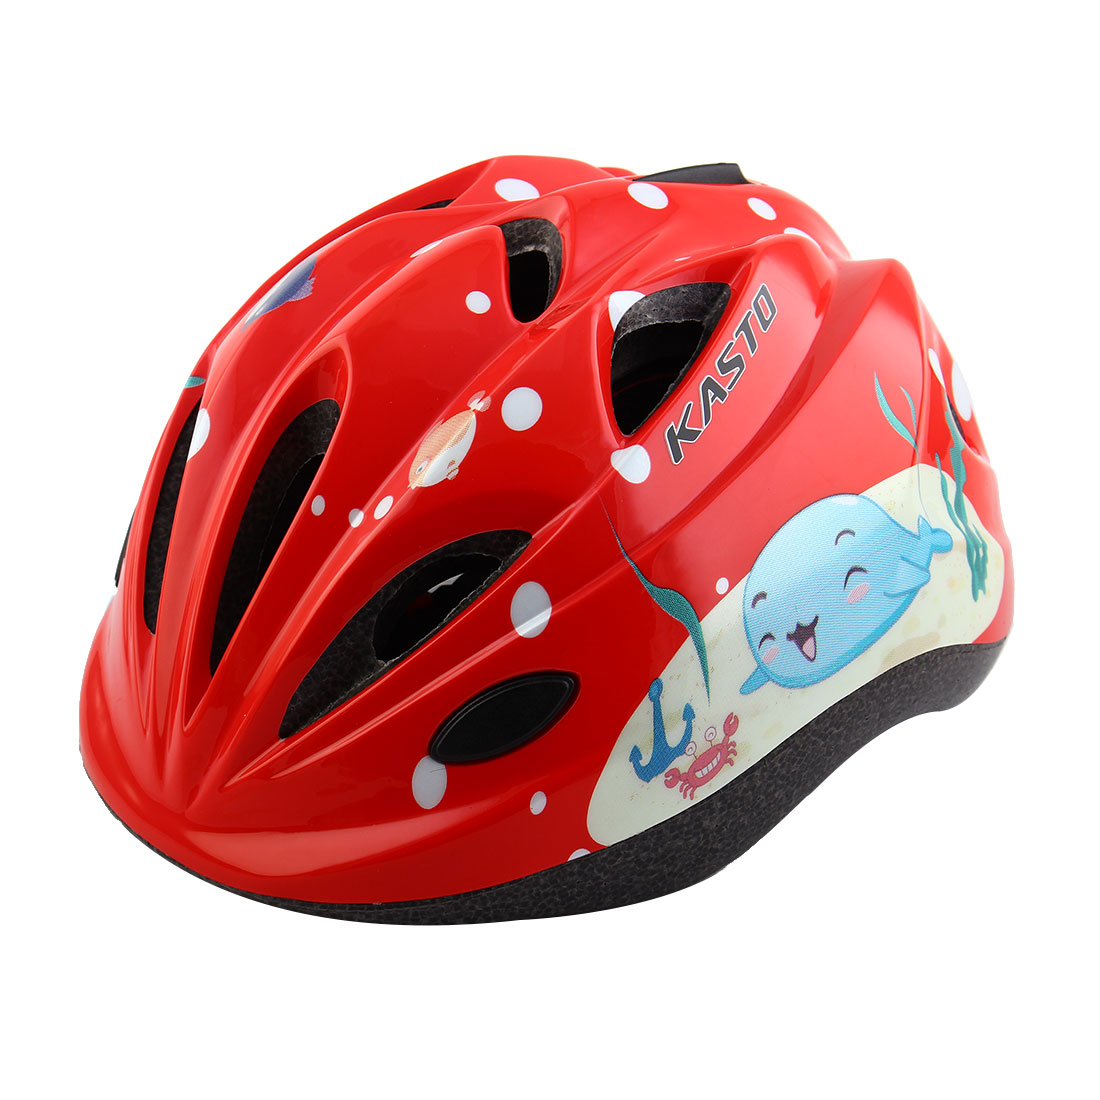 Boys Girls Adjustable Belt Removable Liner Road Cycling Mountain Bicycle Cap Safety Bike Helmet Red